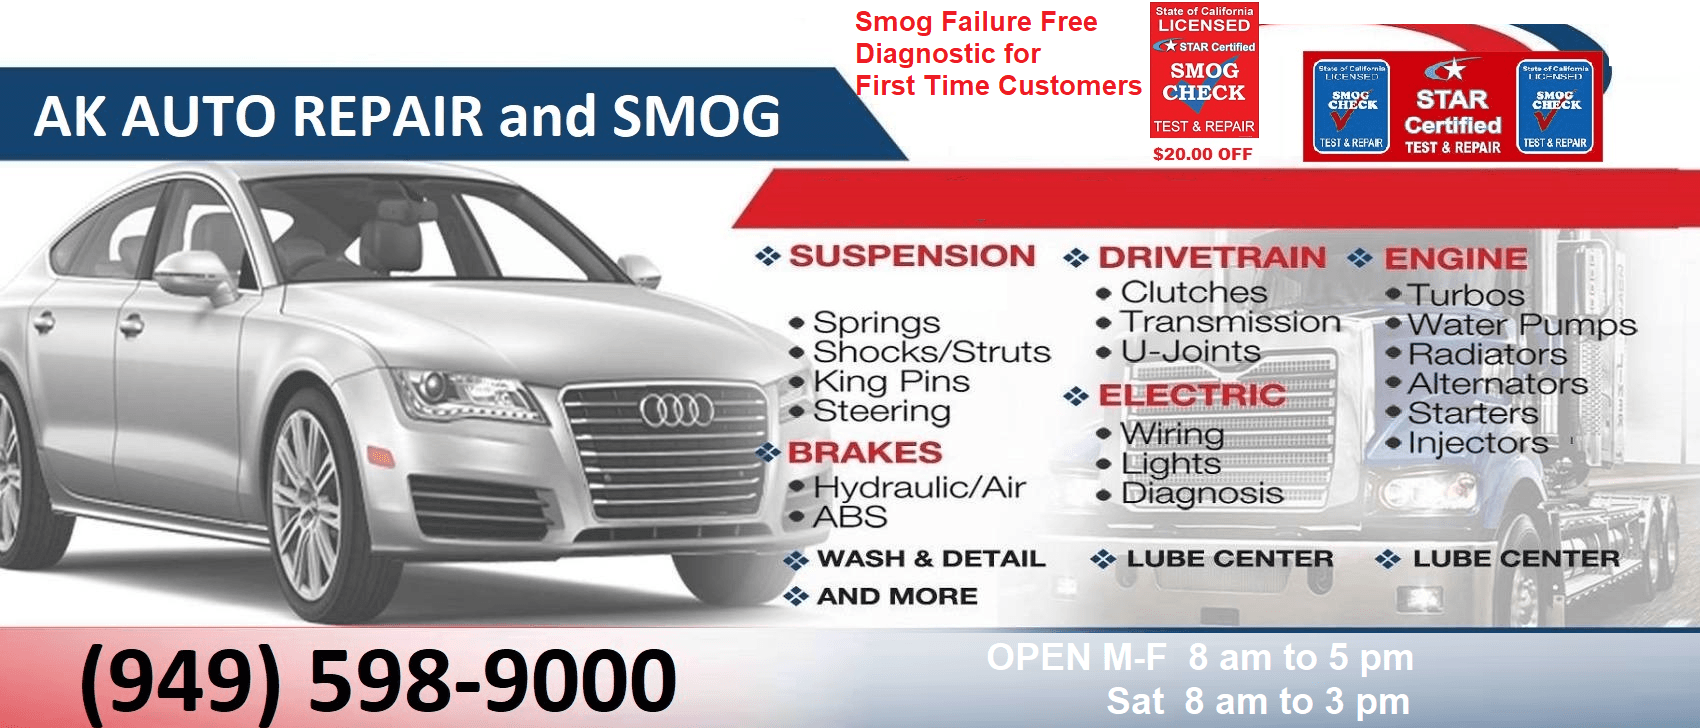 AK Auto Repair and Smog display specials ad